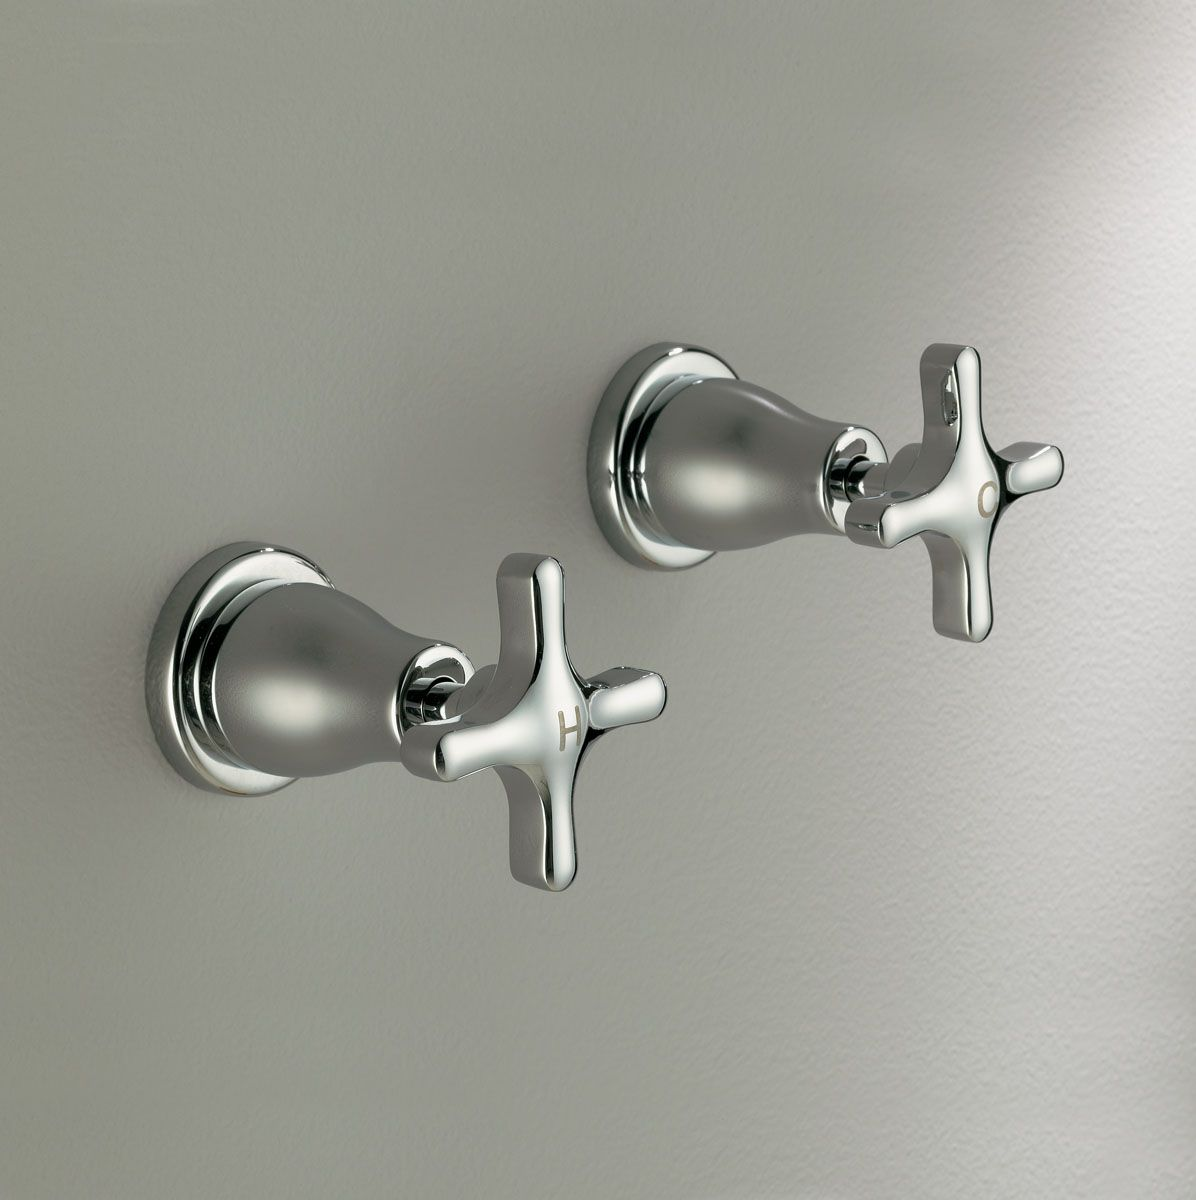 Dorf | Loxton | Wall Tap Assembly | Our Brands | Pinterest | Wall ...